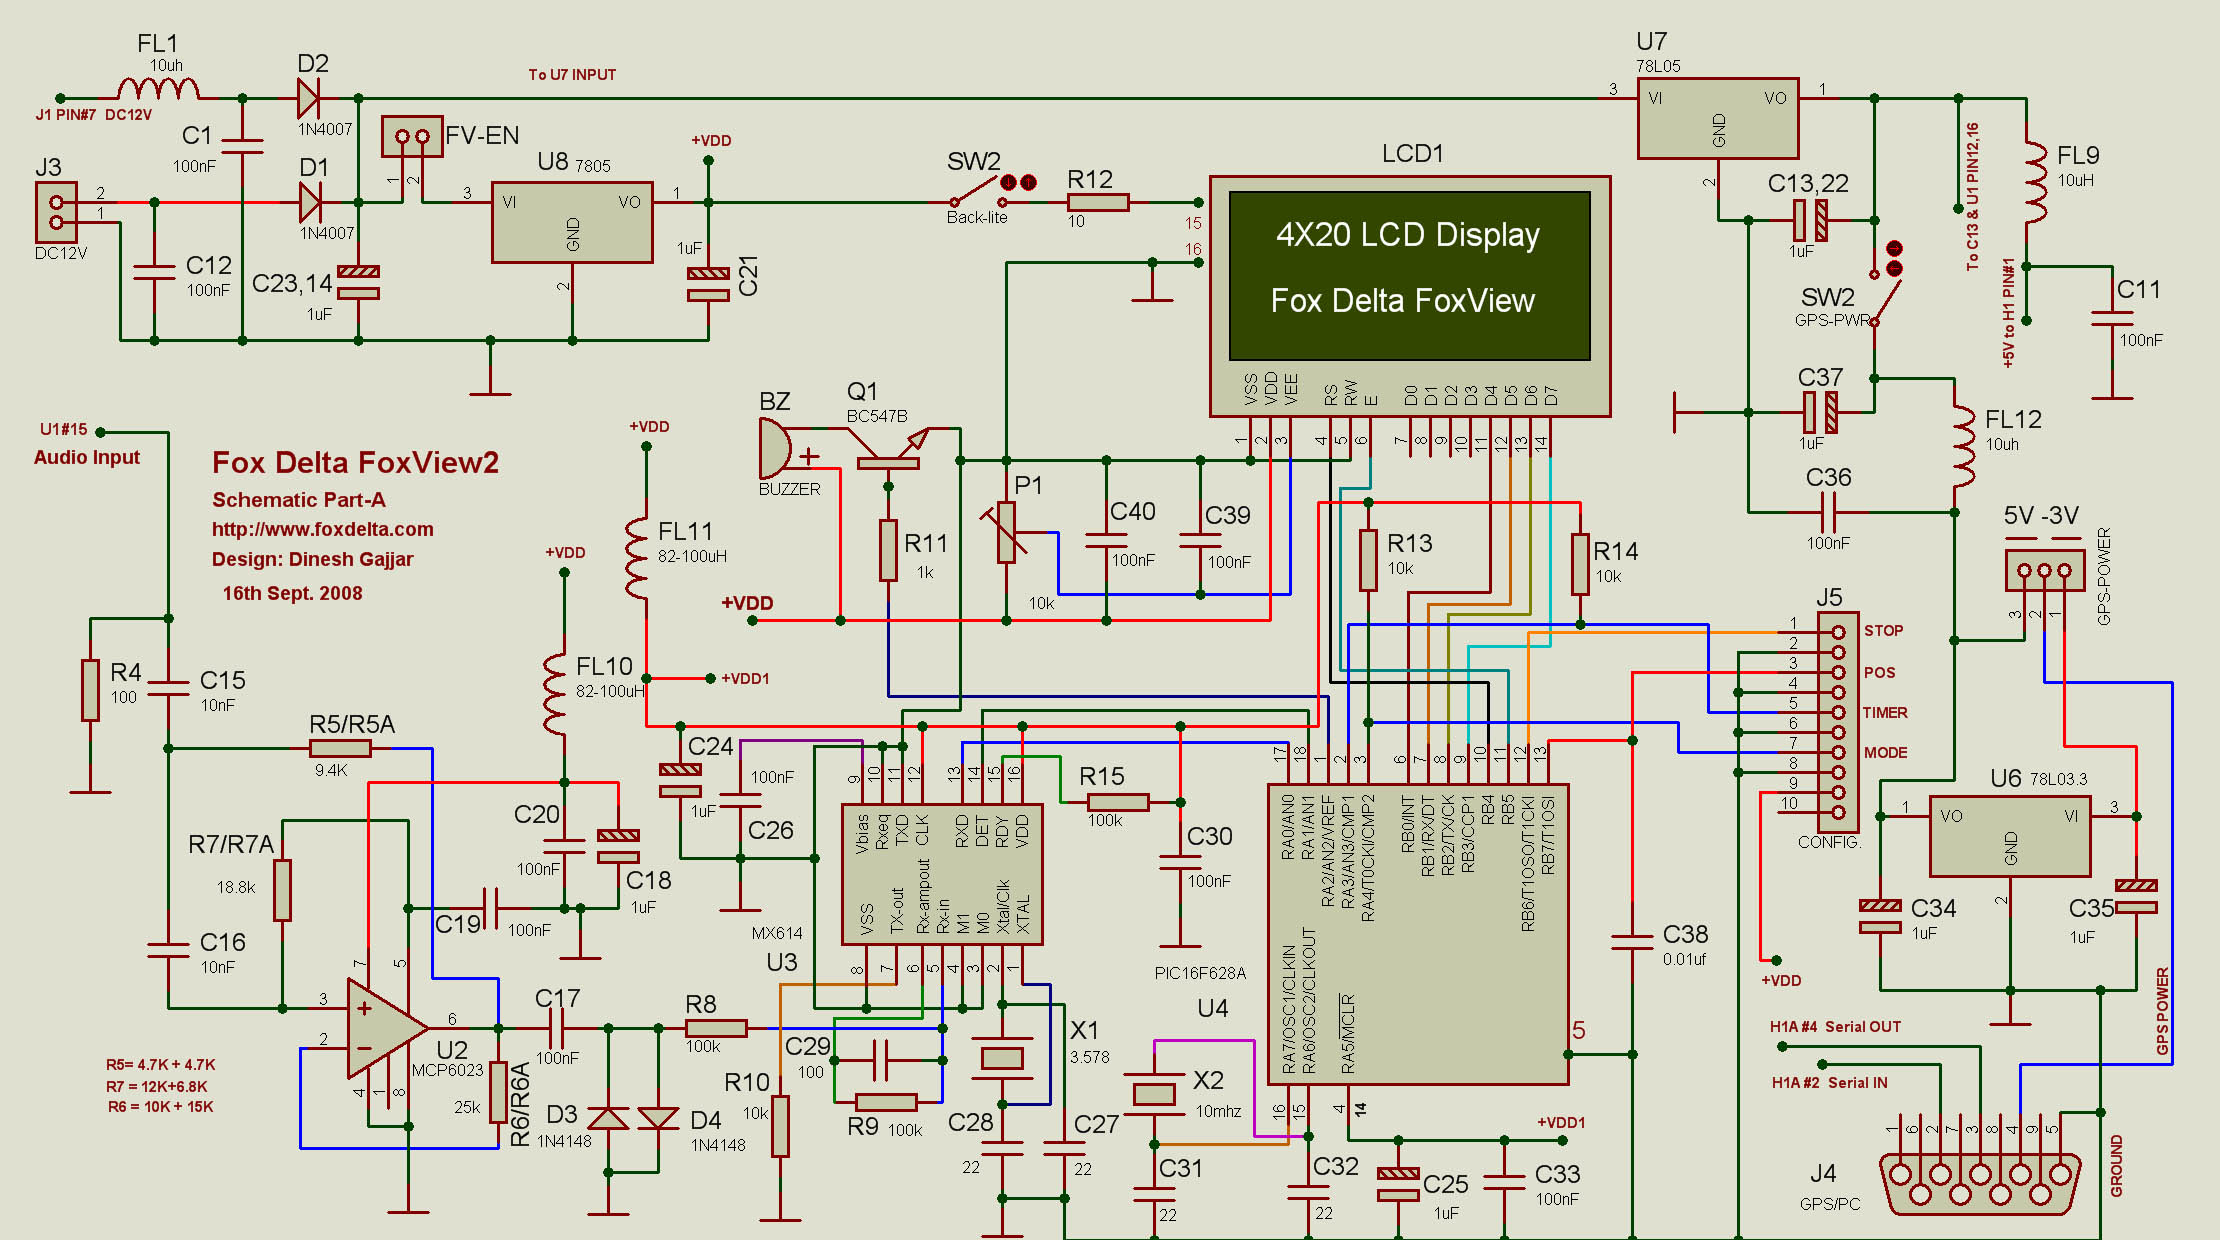 Foxview2pic16f628a 4x20 Lcd Aprs Terminal Tracker Kiss Tnc Gps Circuit Schematic Of Foxview2 Part A